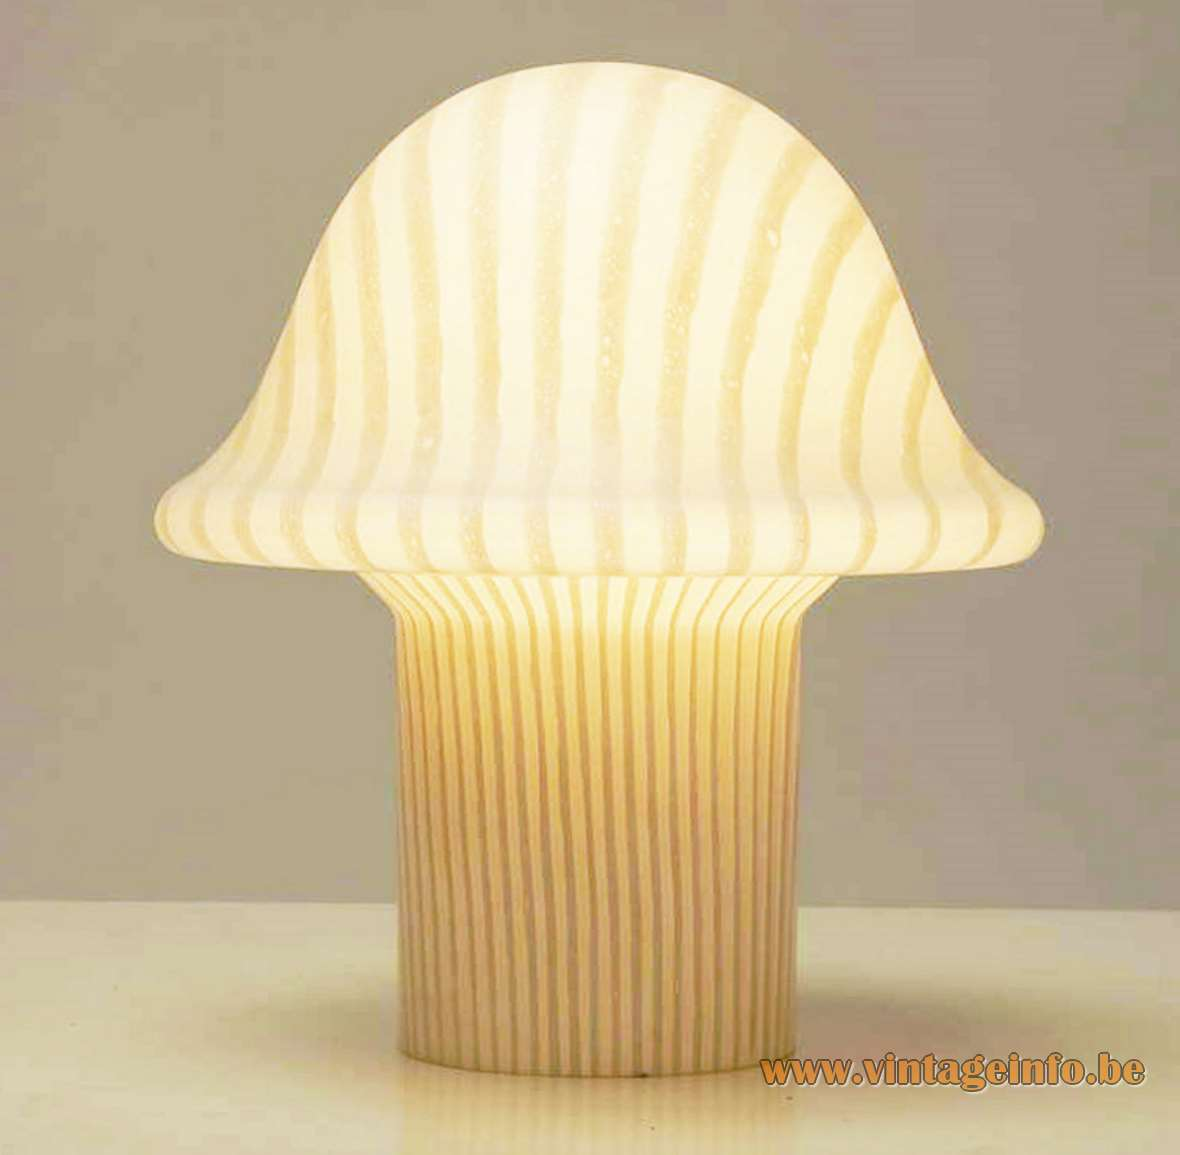 Peill + Putzler Mushroom Table Lamp